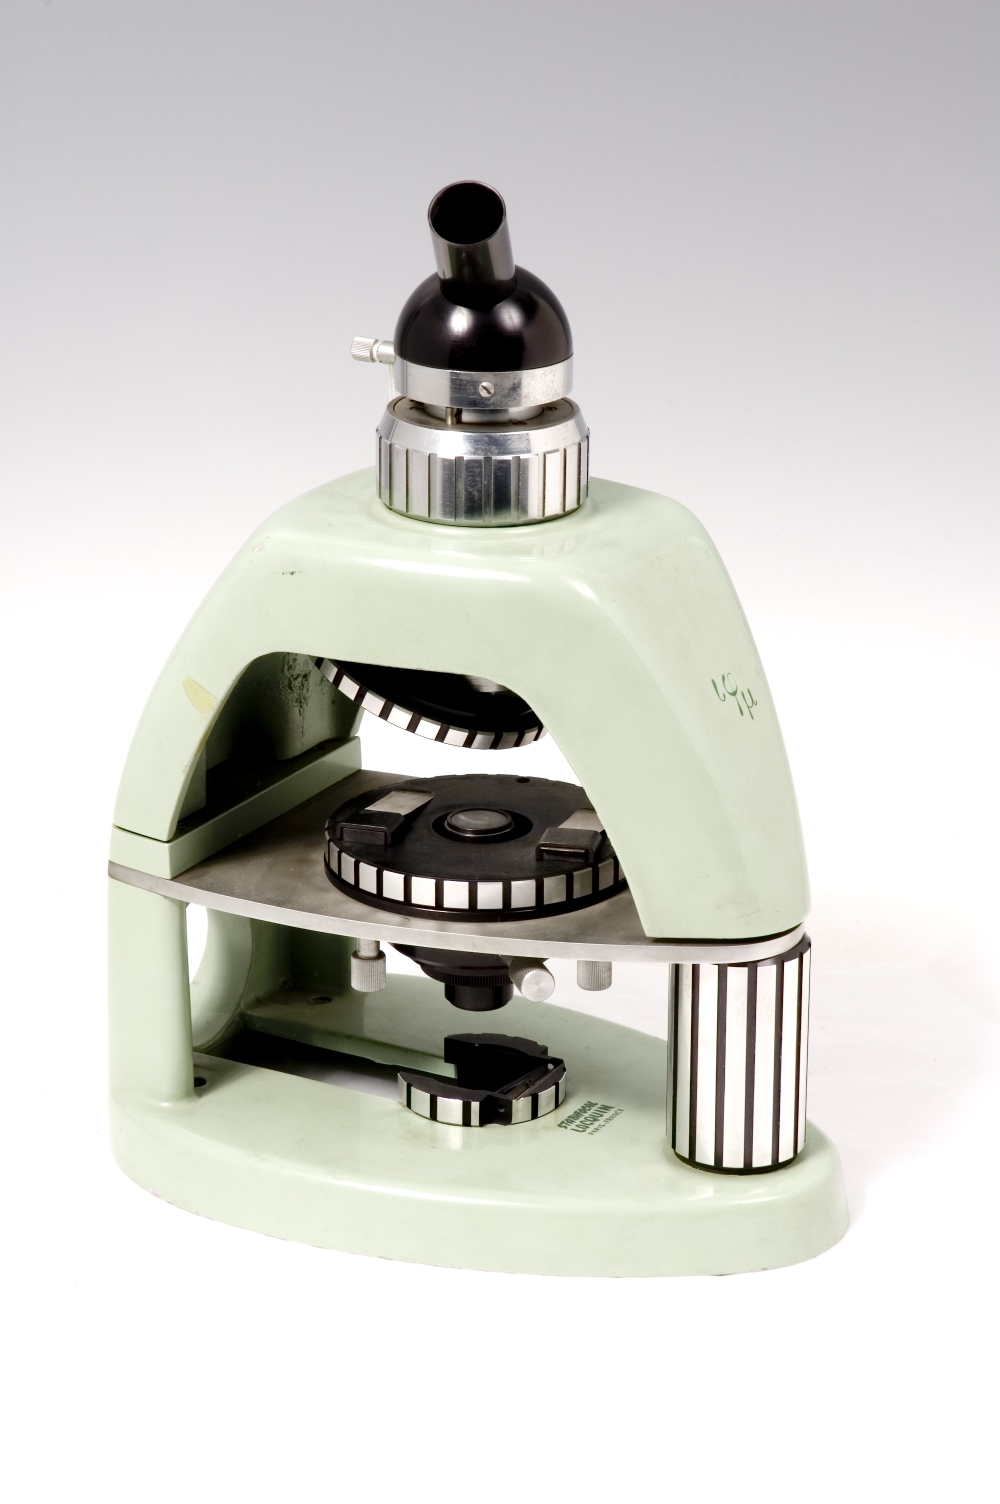 preview image for 'Stabifocal' Compound Microscope, by Marcel Locquin, Paris, c.1960